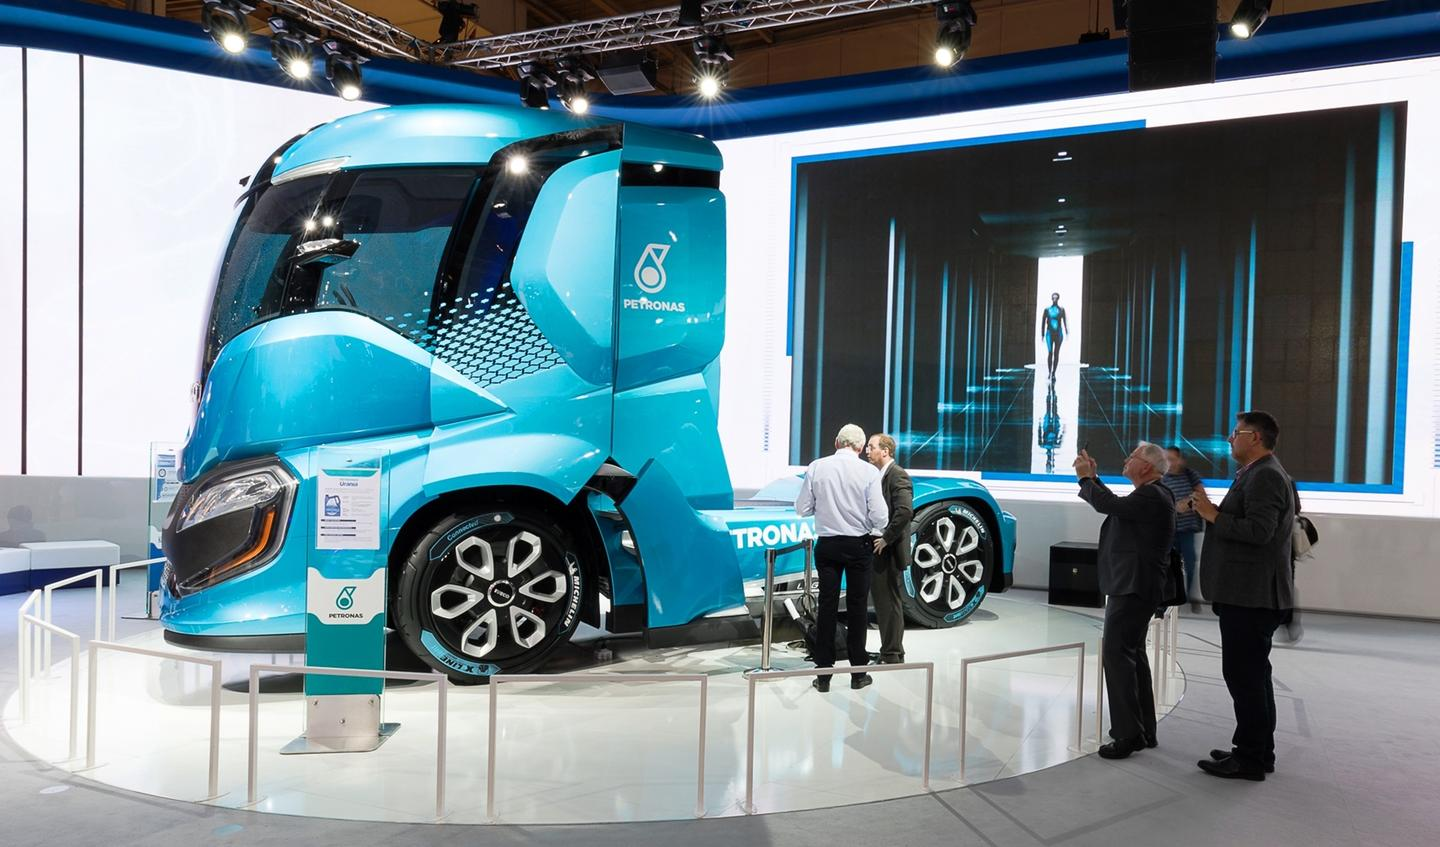 The Z Truck is powered by liquefied natural gas (LNG), in the form of bio-methane